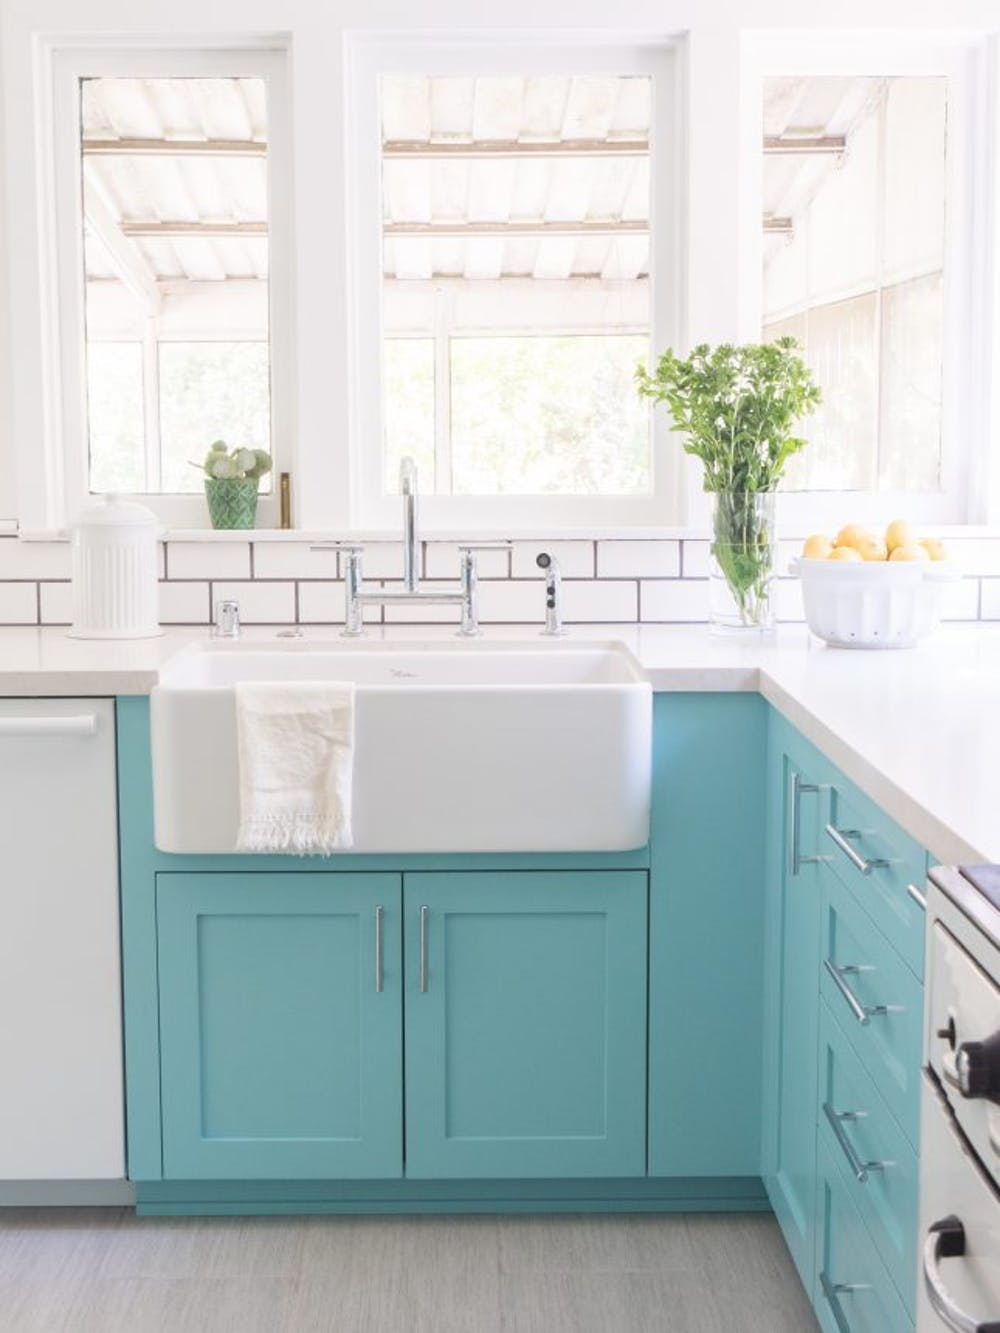 10 Ways to Use Color in a Small Kitchen - little house of could